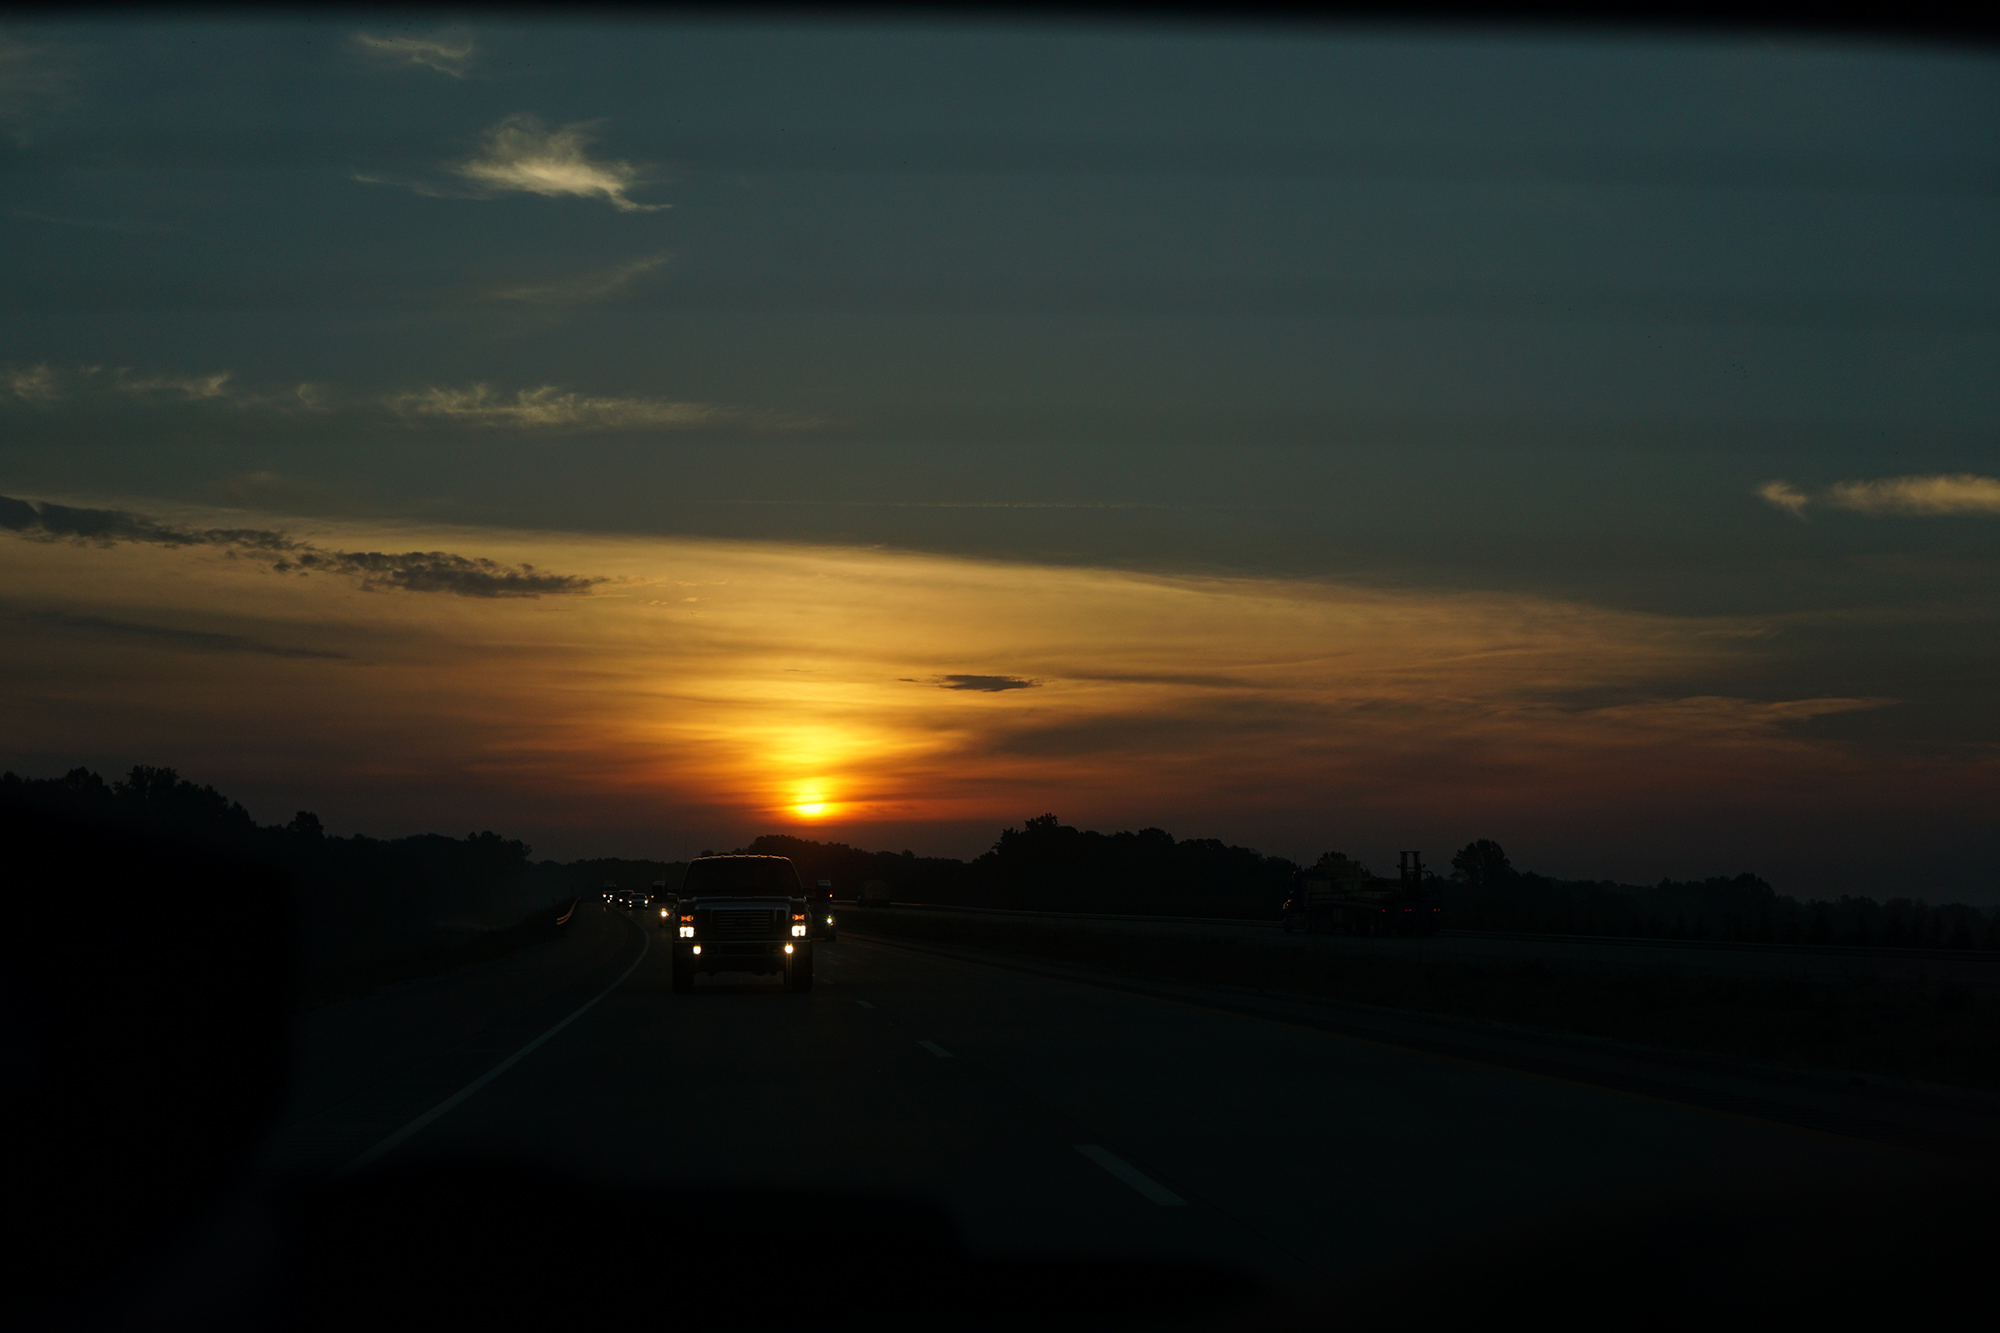 Sunrise from the back window of the car, southern Indiana / Darker than Green